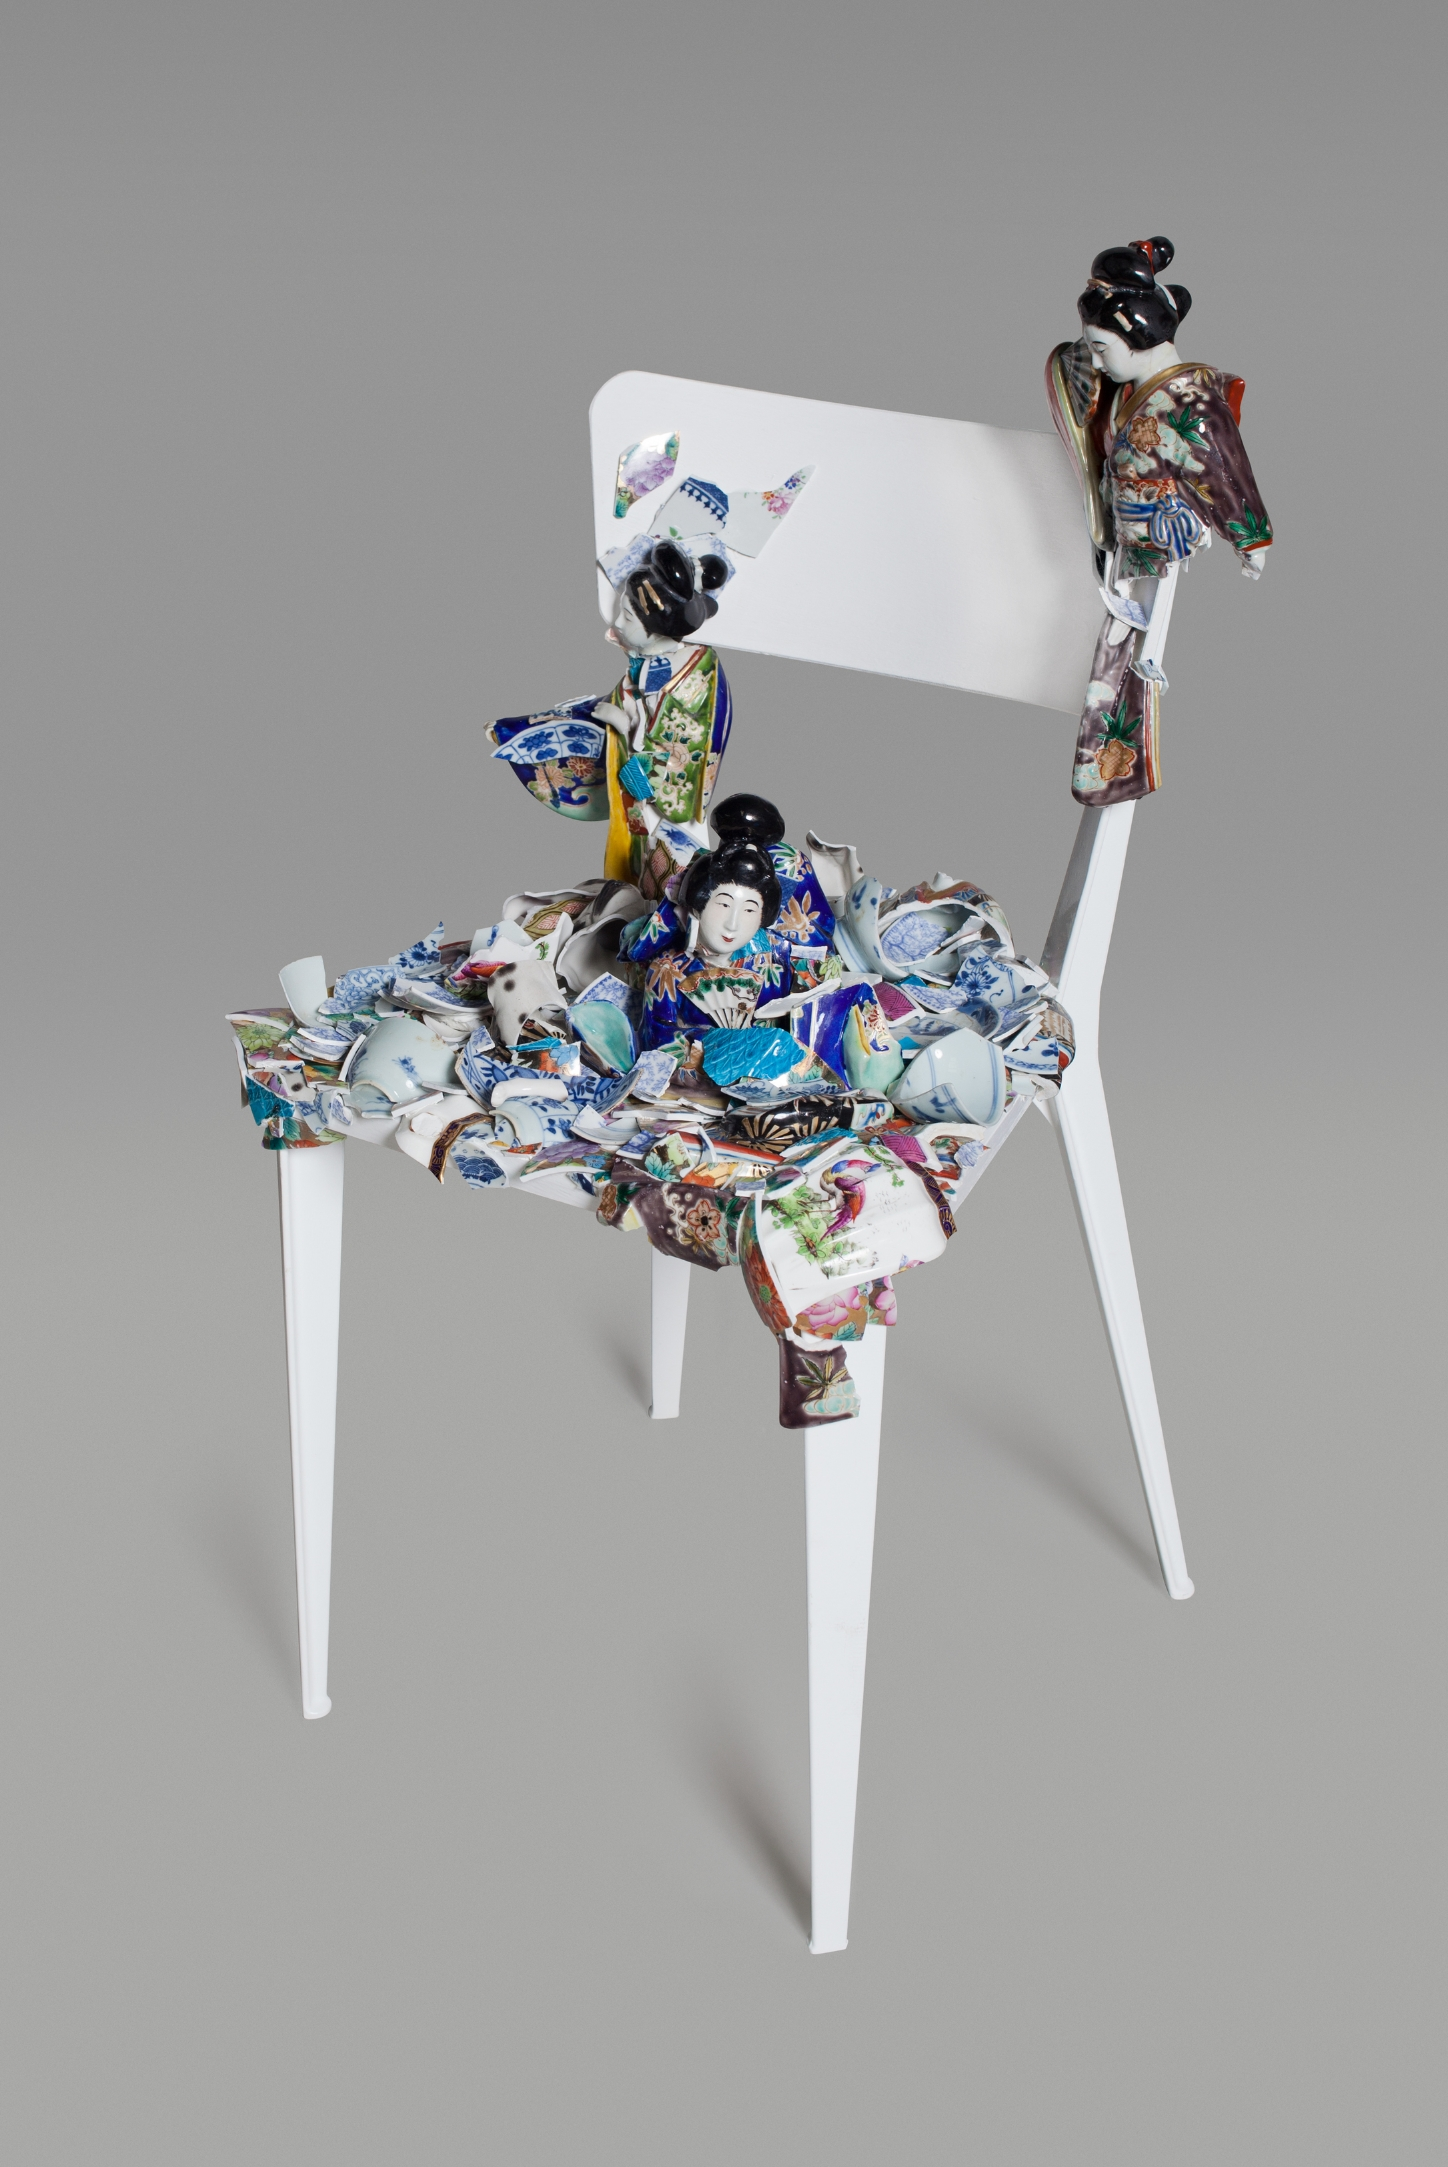 23_Bouke_de_Vries_Chair_Carl_Glover.jpg